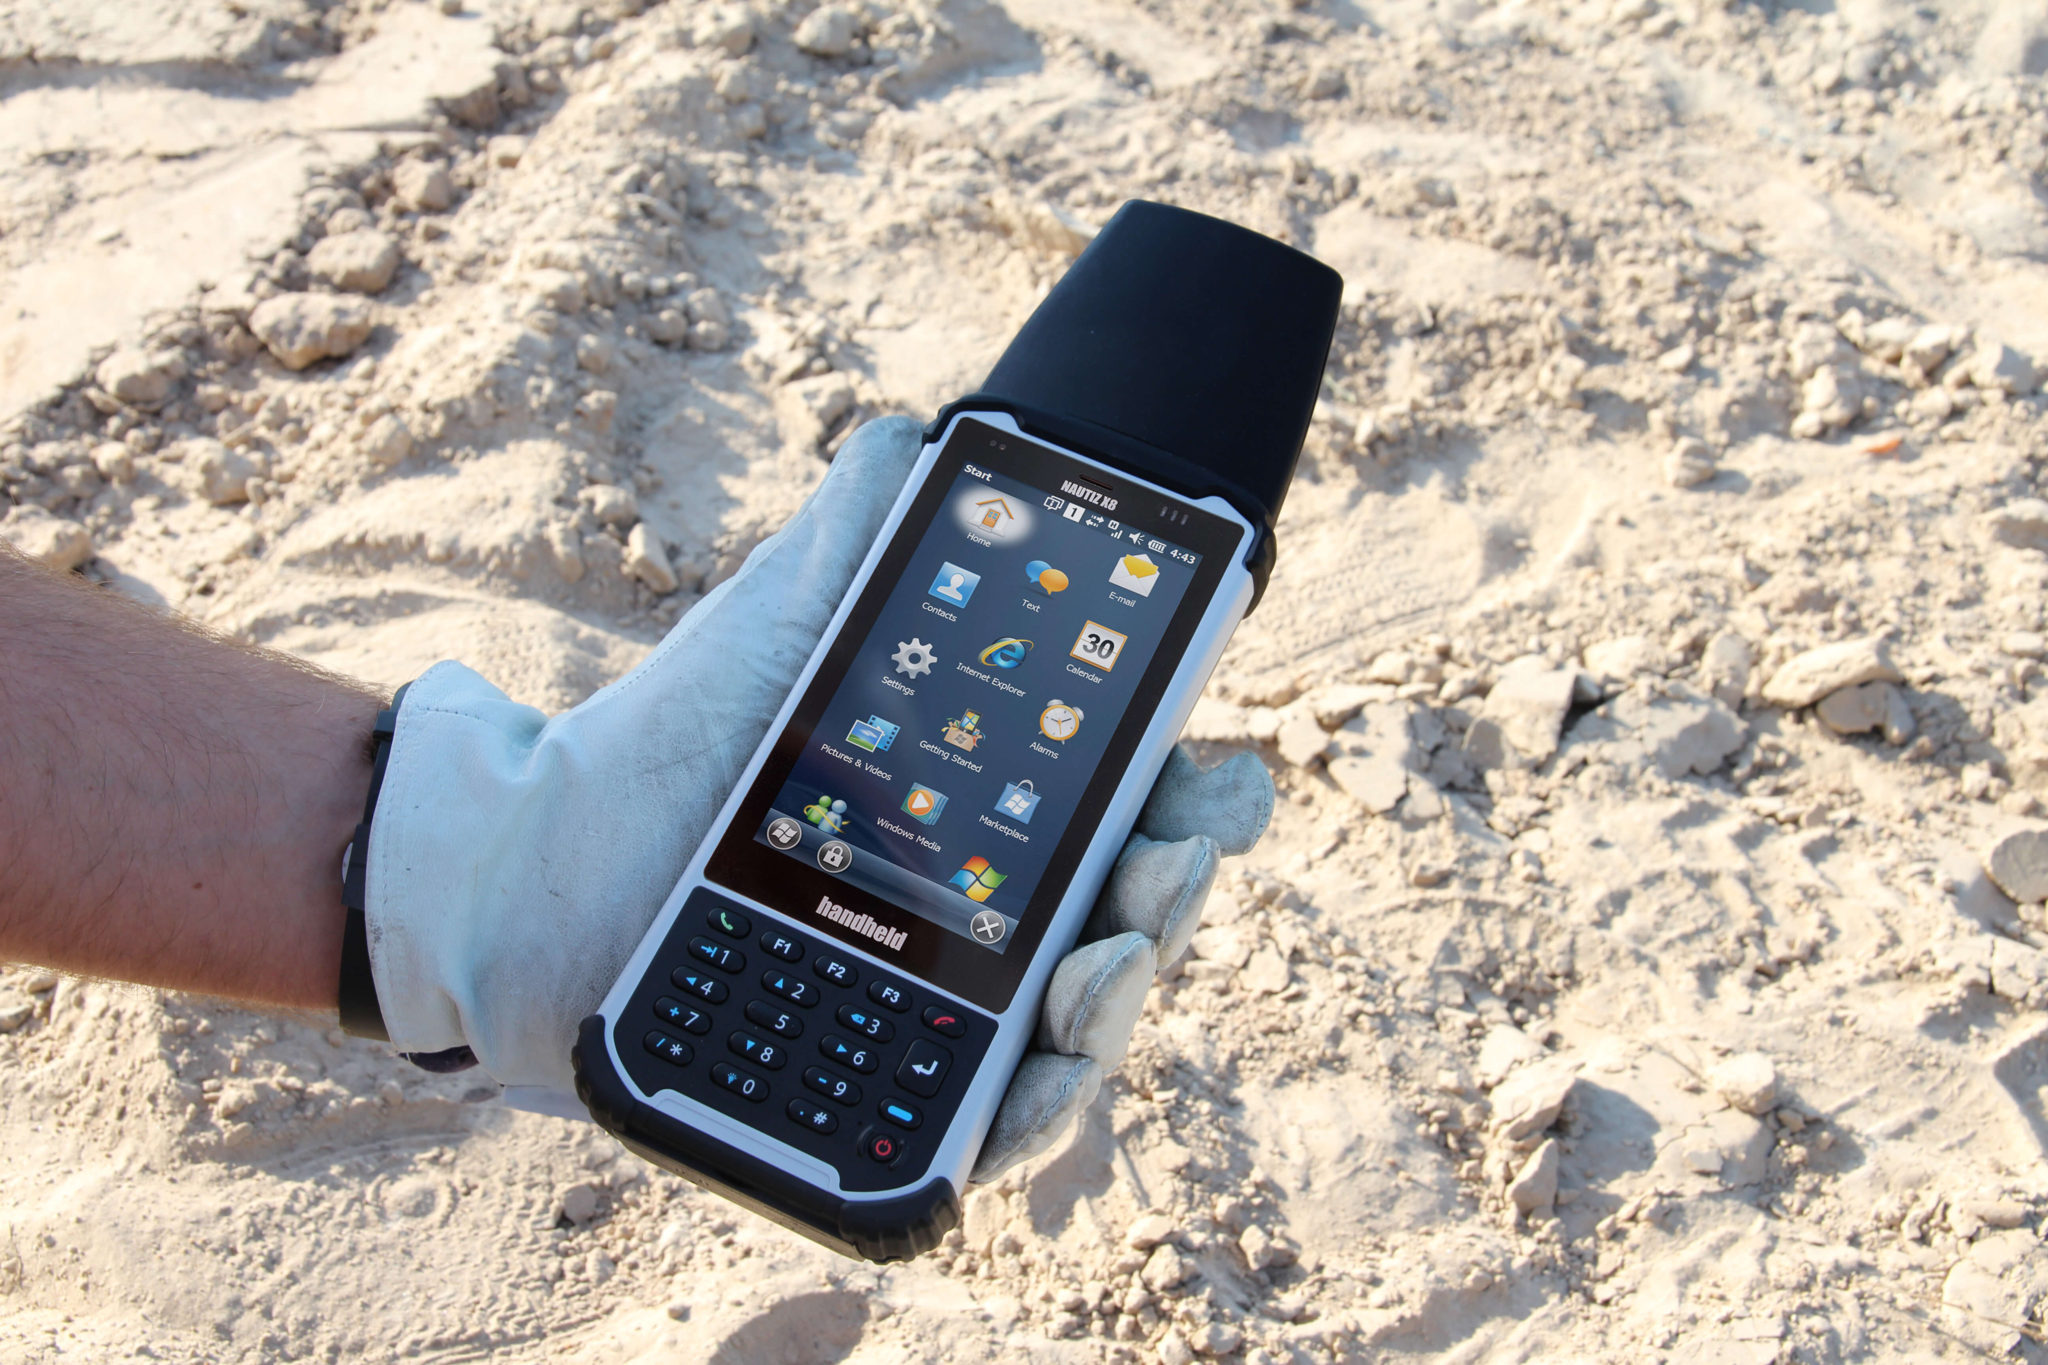 nautiz-x8-expansion-cap-handheld-rugged-computers-outdoors